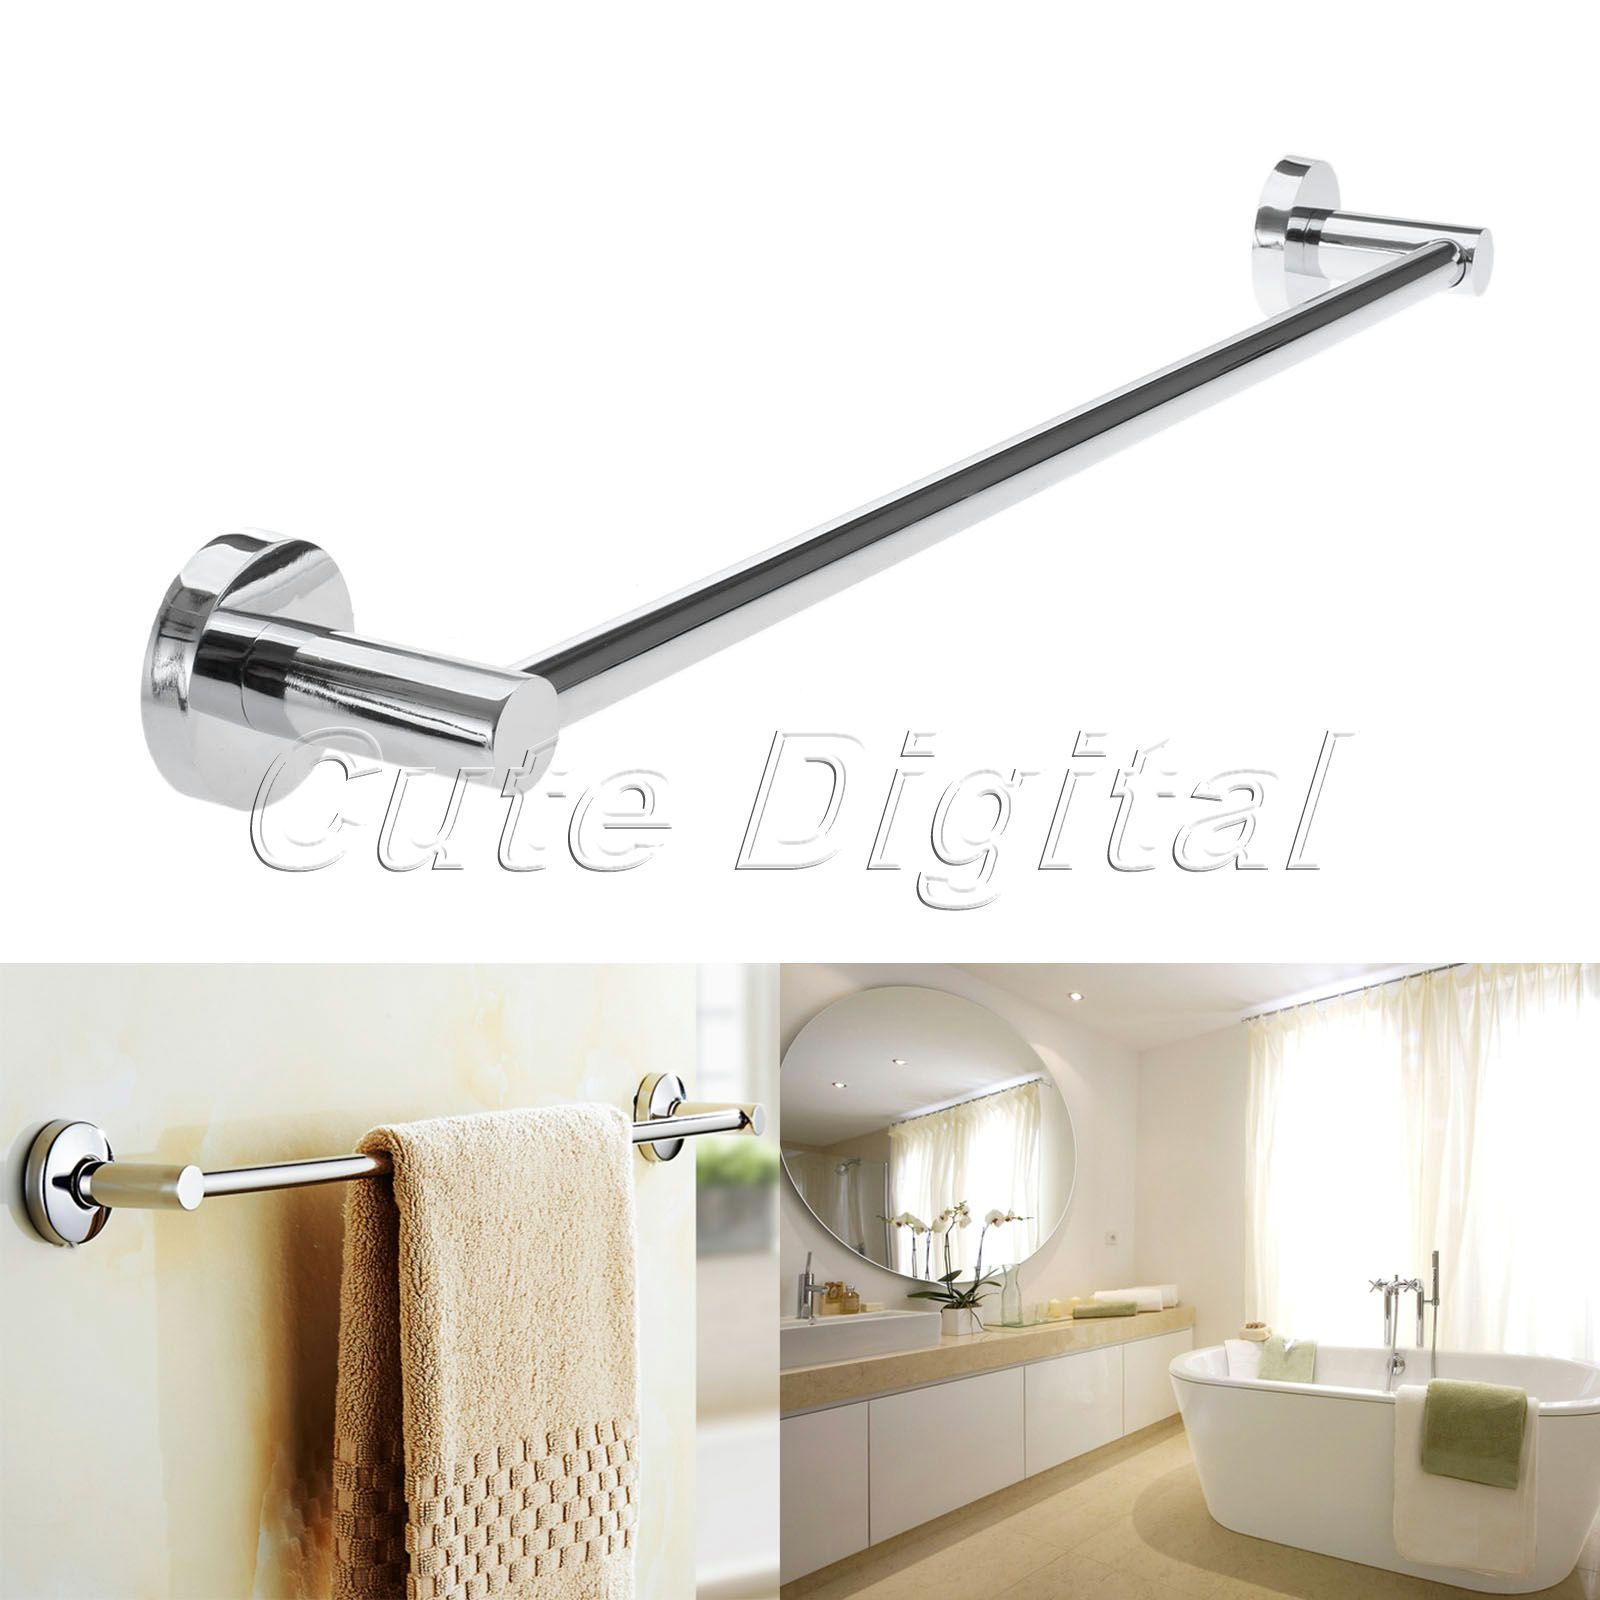 Popular Towel Bar HeightBuy Cheap Towel Bar Height lots from